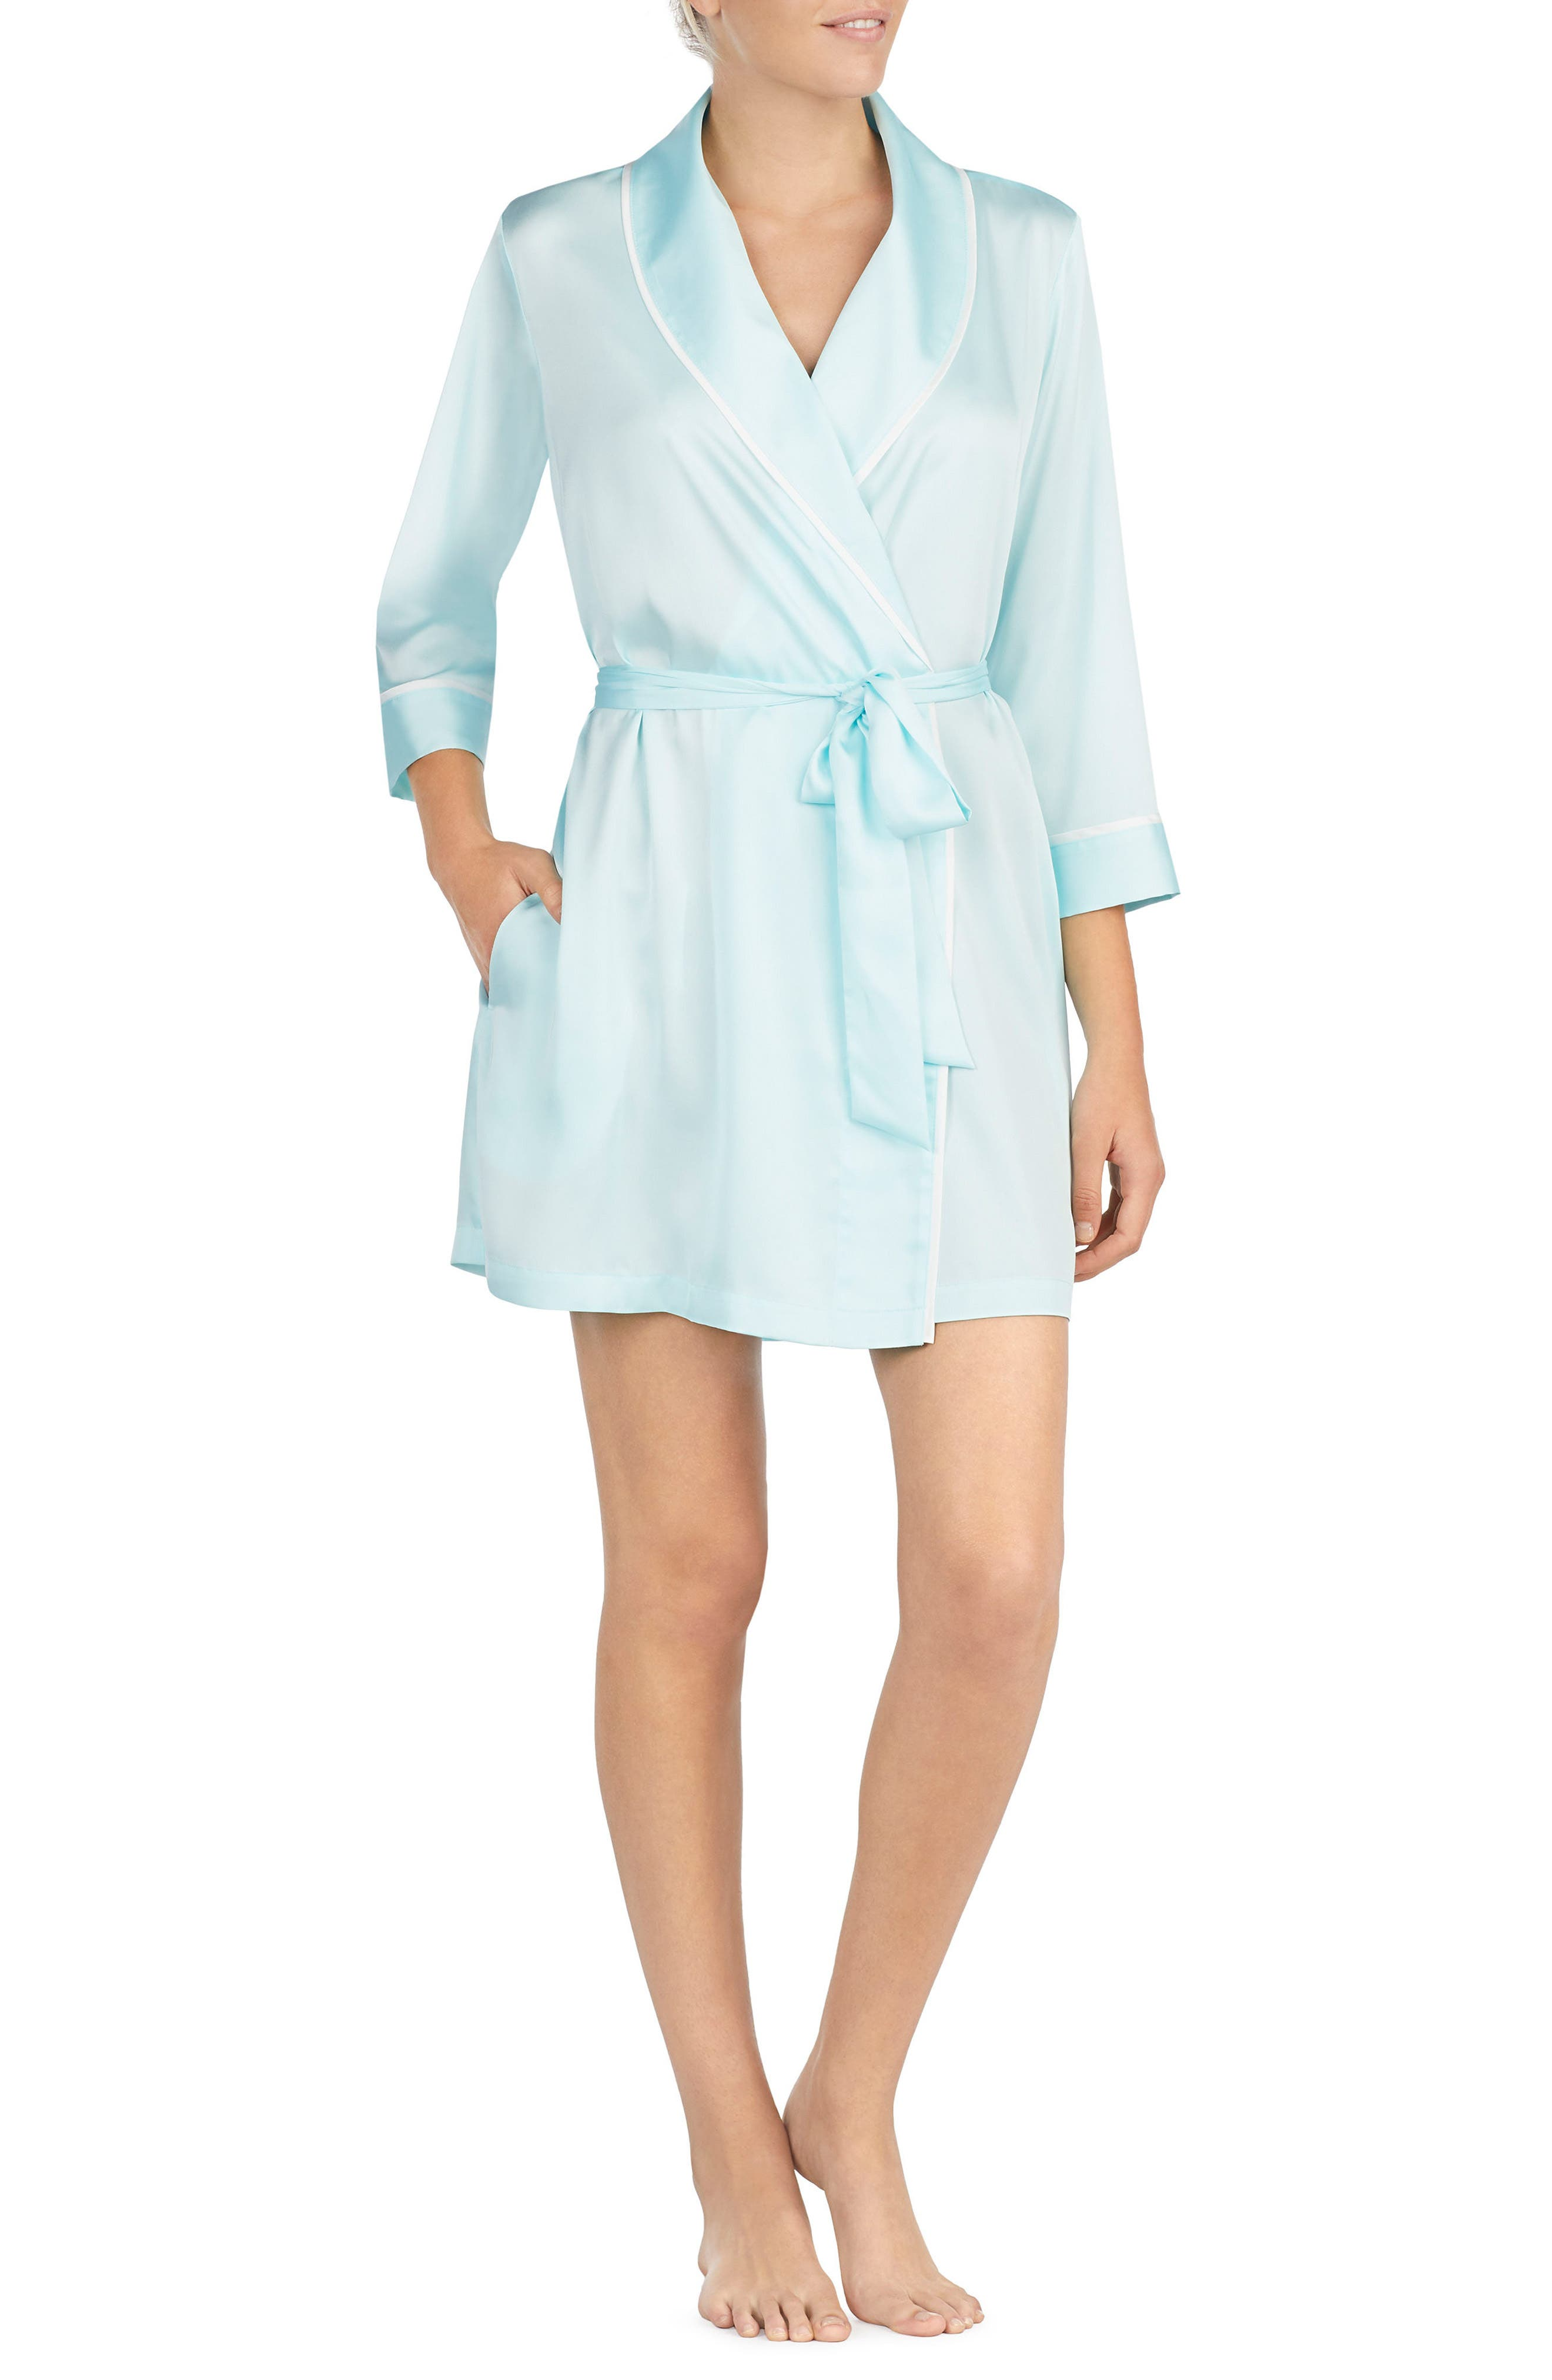 happily ever after charmeuse short robe,                         Main,                         color, Air